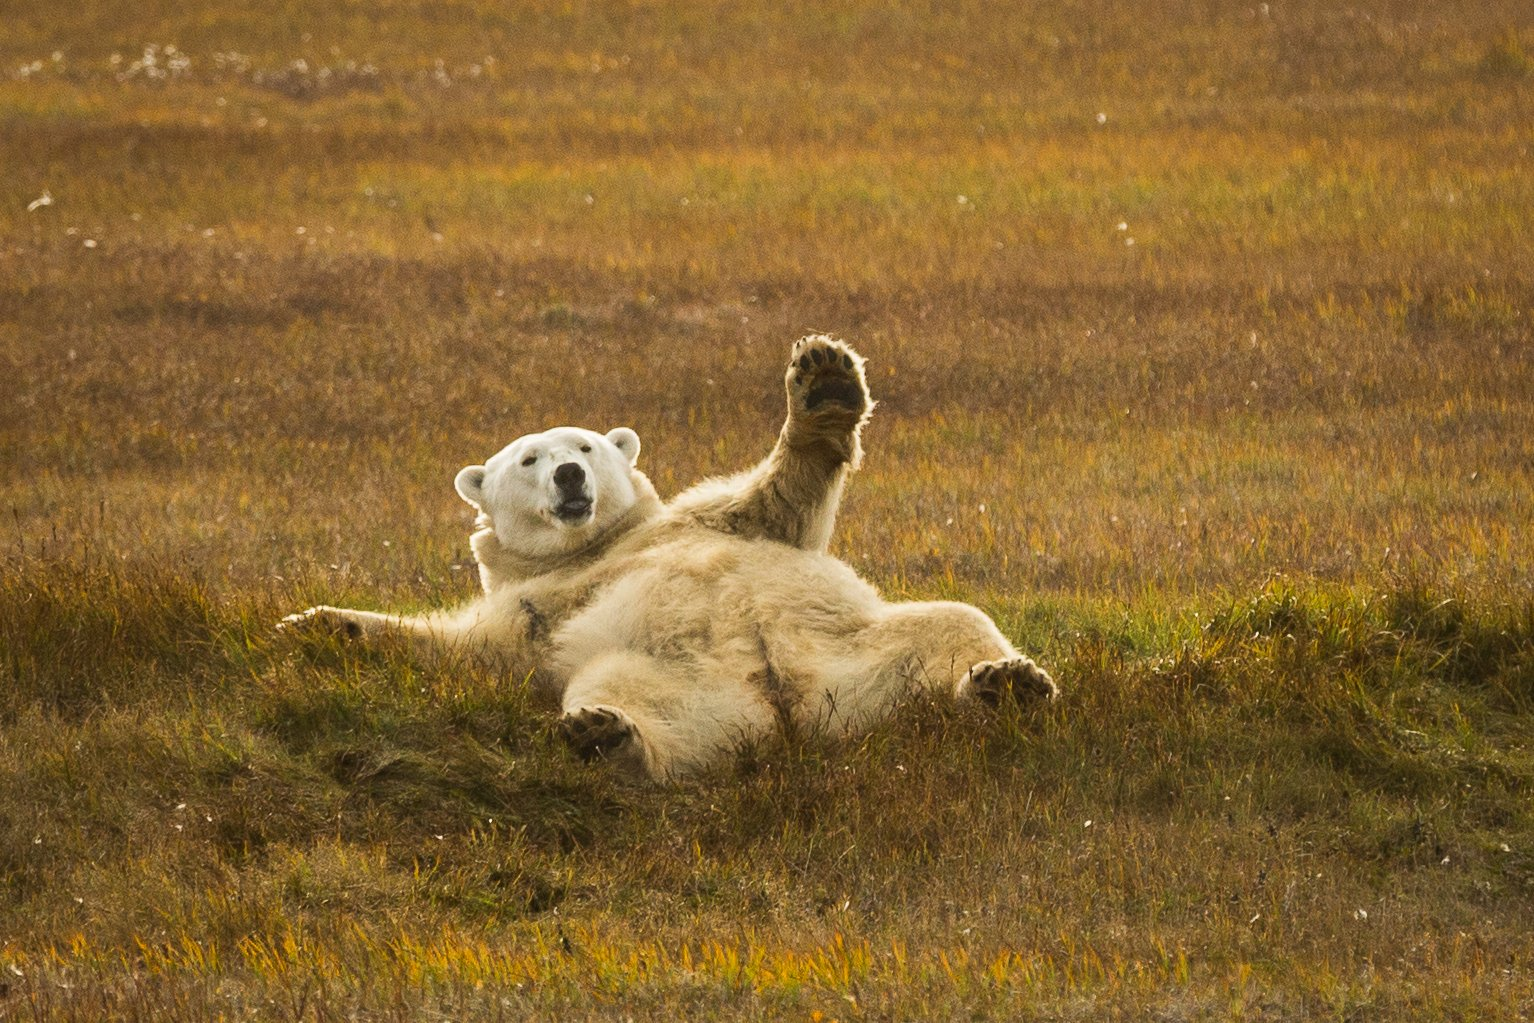 Polar bears in perspective: humanity's complicated relationship with the Arctic's iconic predator